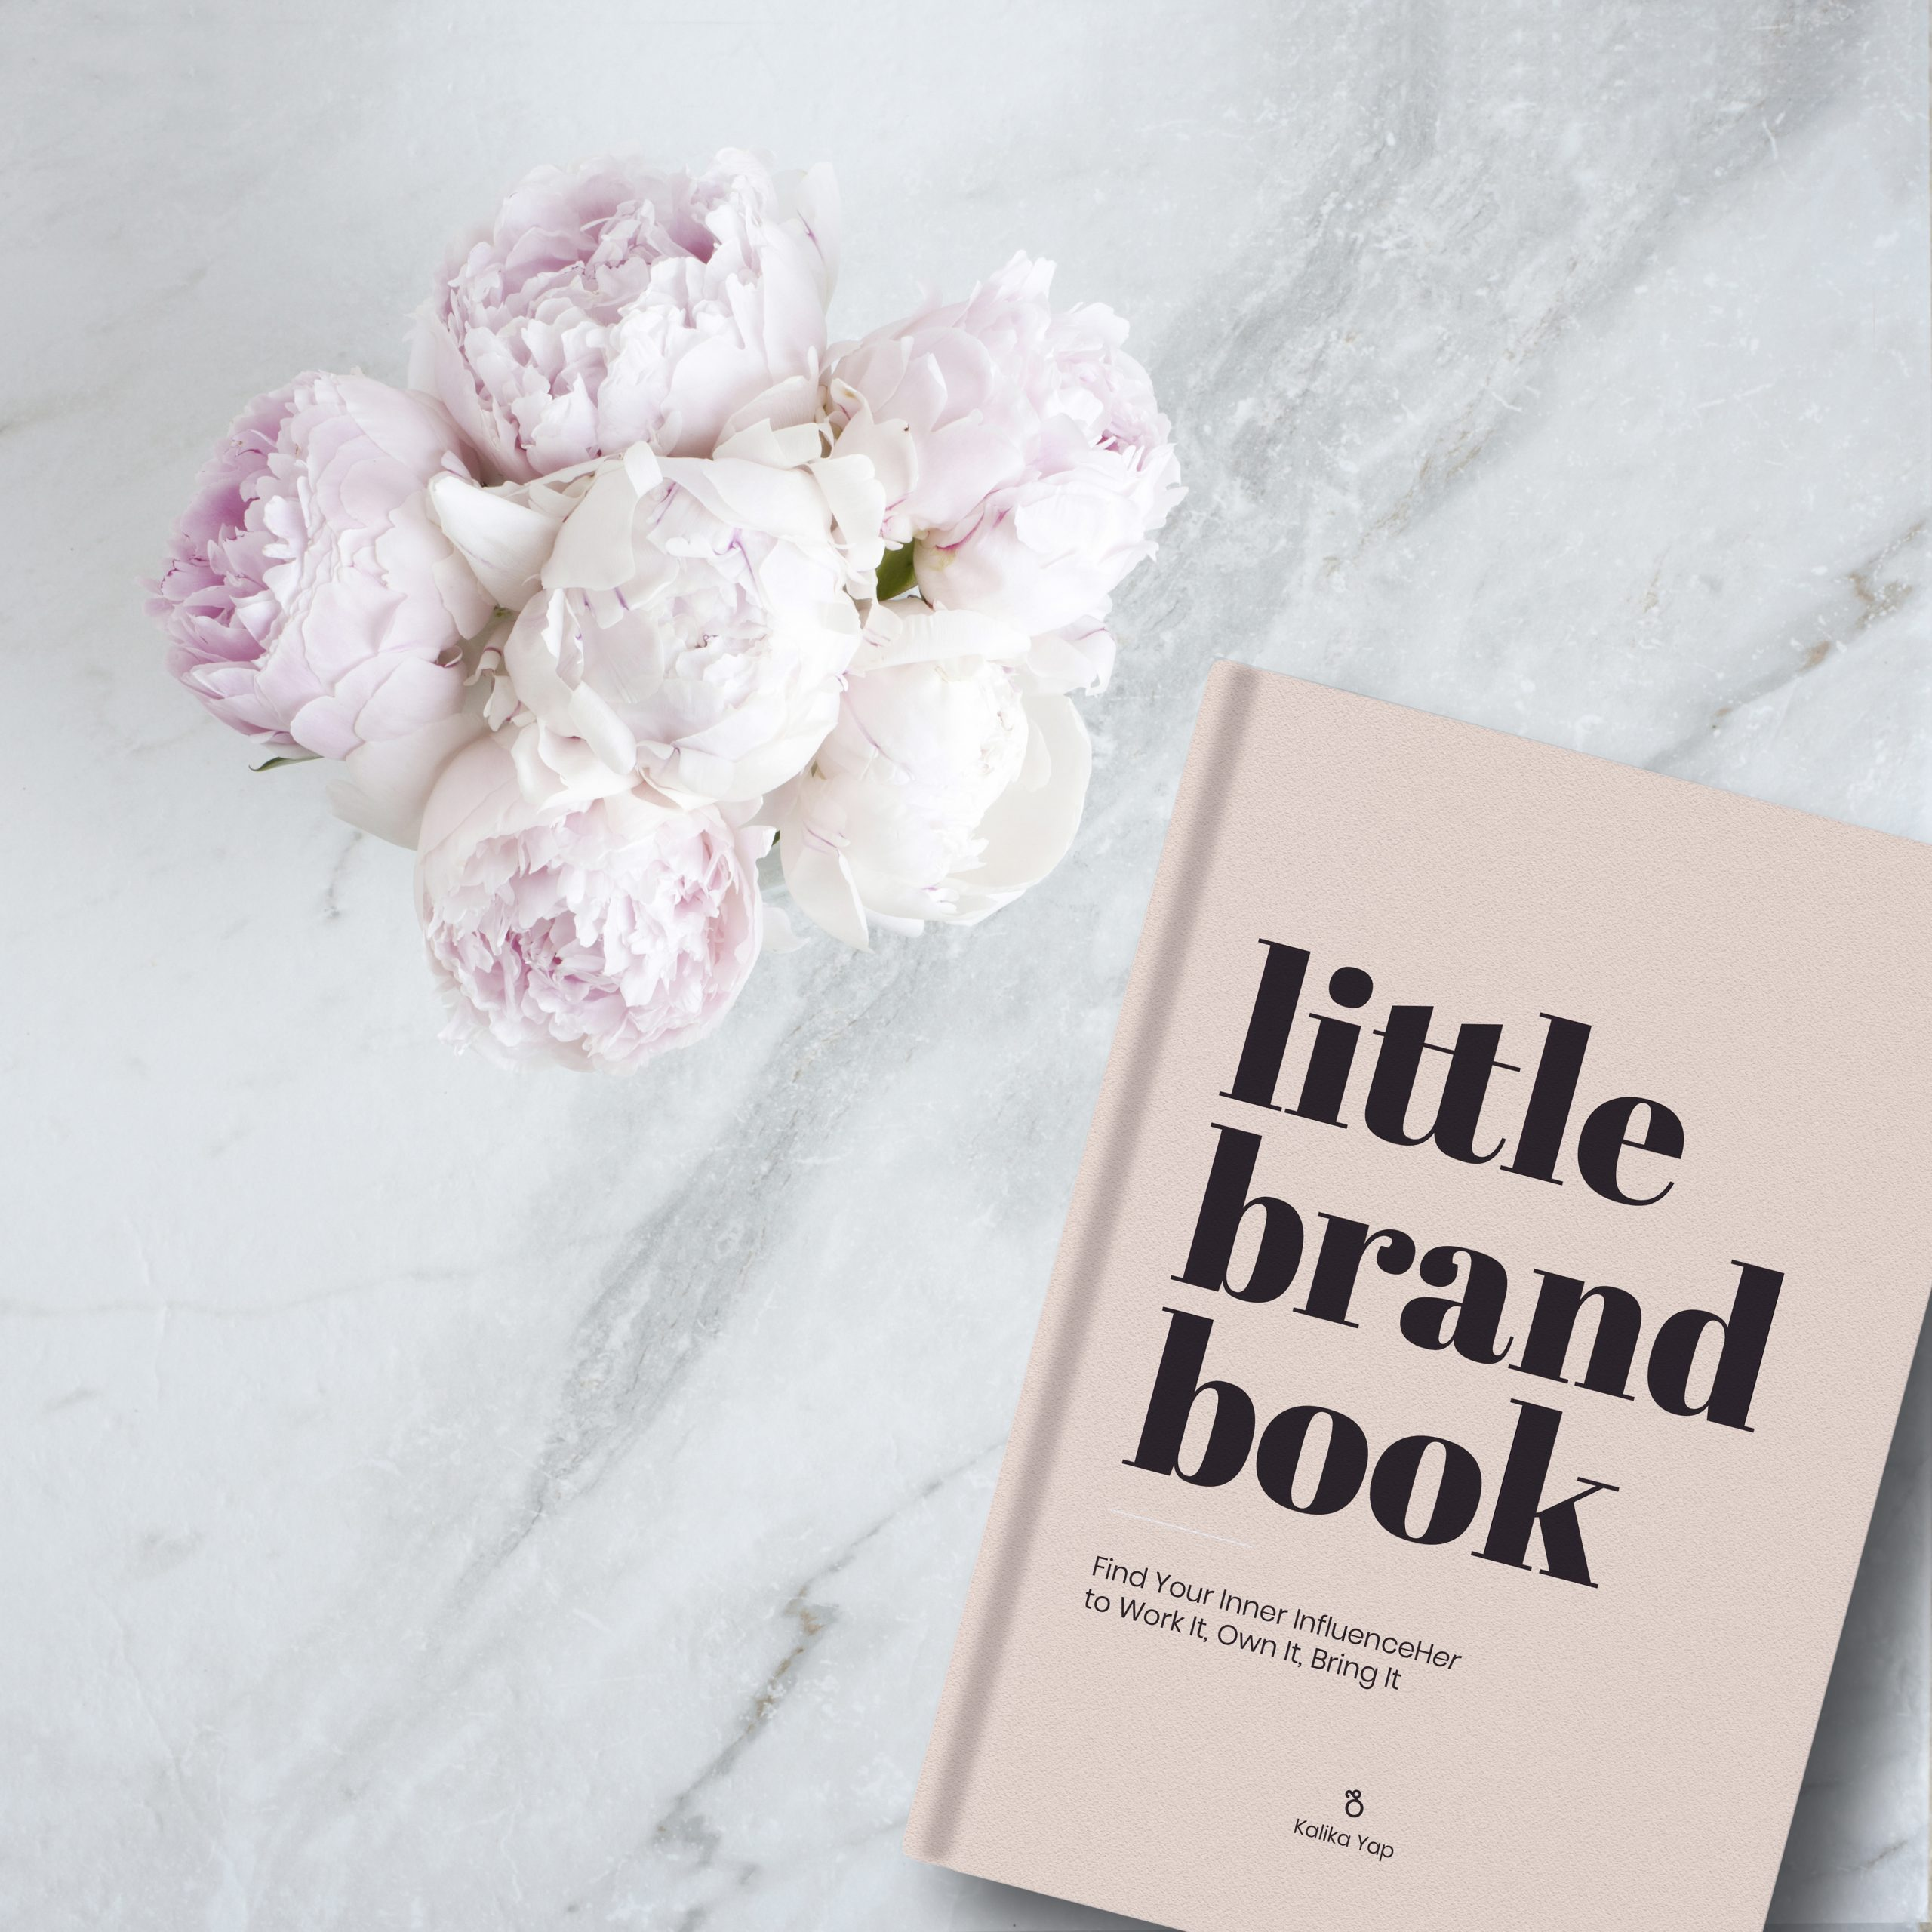 Kalika Yap's Little brand book on table with flowers